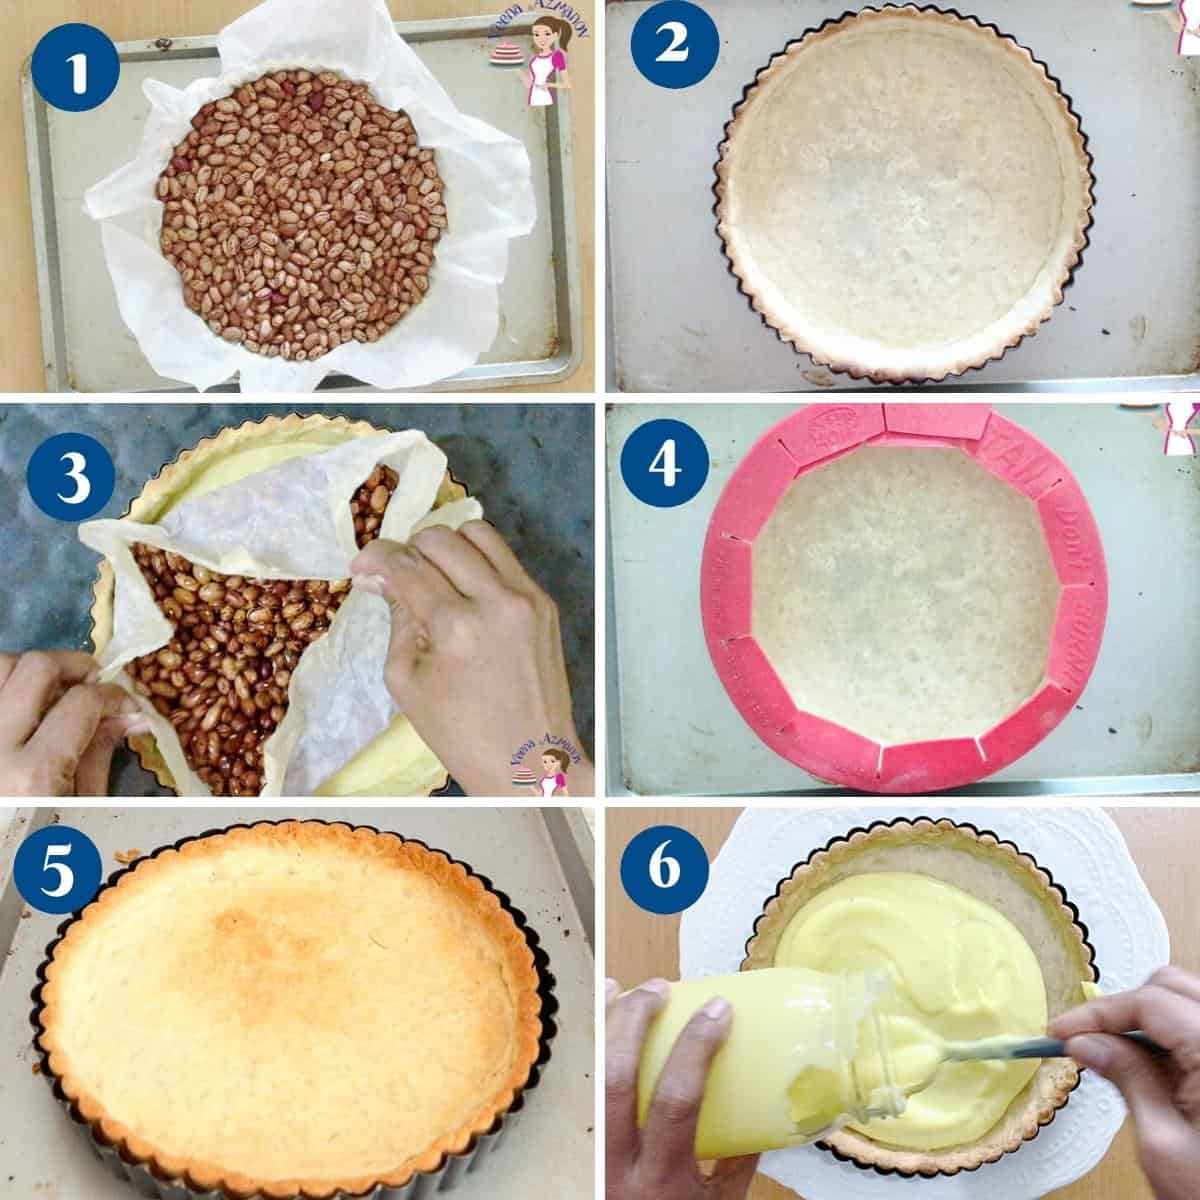 Progress pictures how t o fully bake a rich shortcrust pastry.